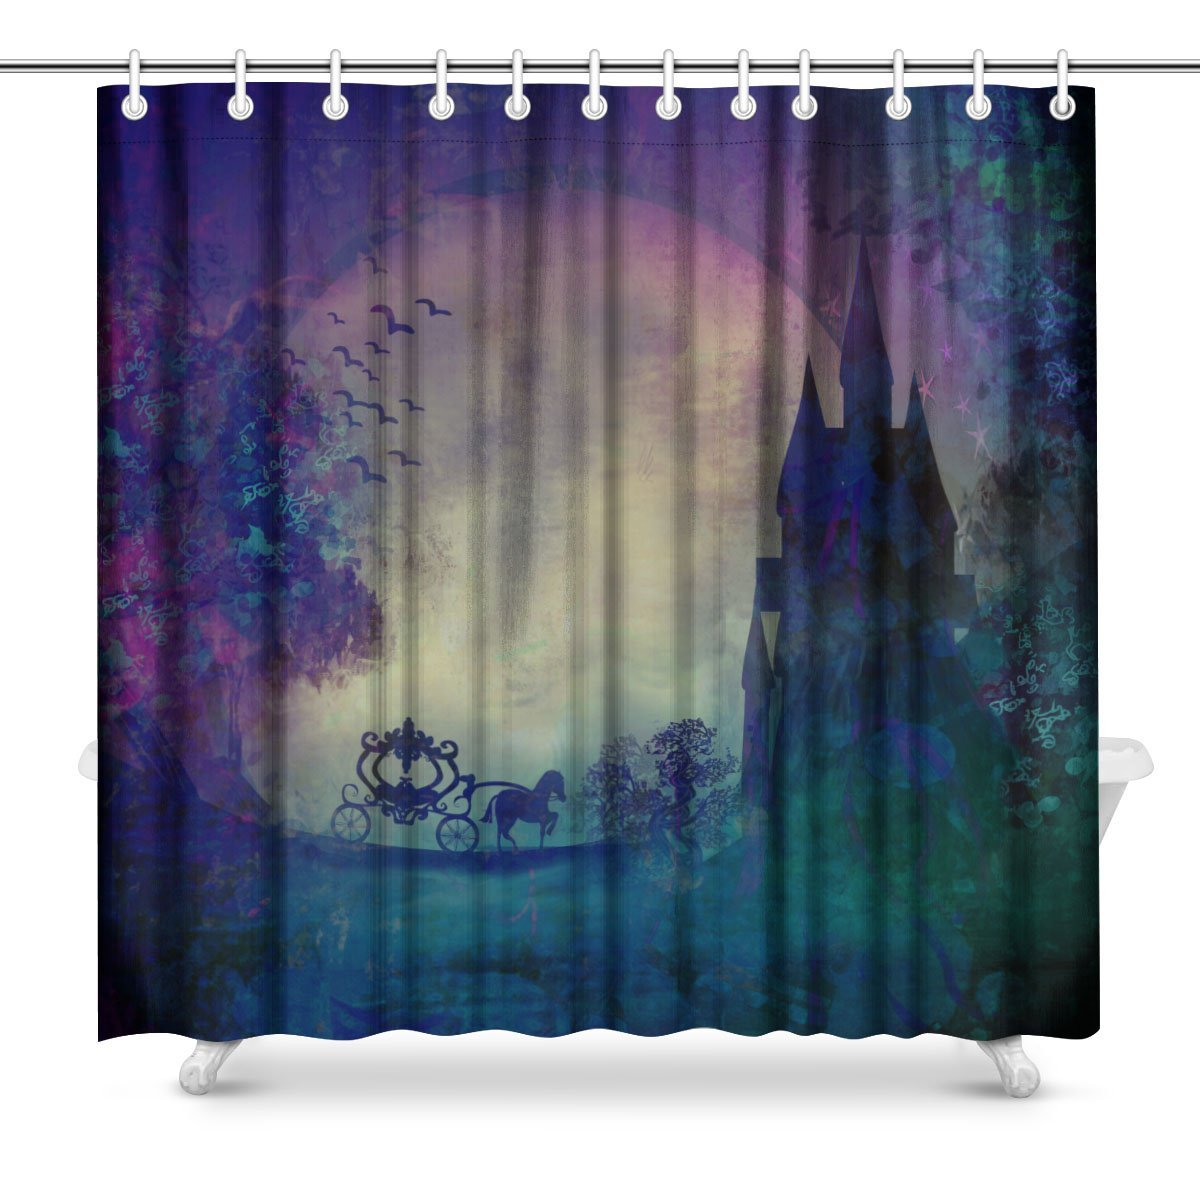 Carriage at Sunset, Silhouette of a Horse Carriage and a Medieval Castle Fabric Bathroom Shower Curtain Decor Set with Hooks,